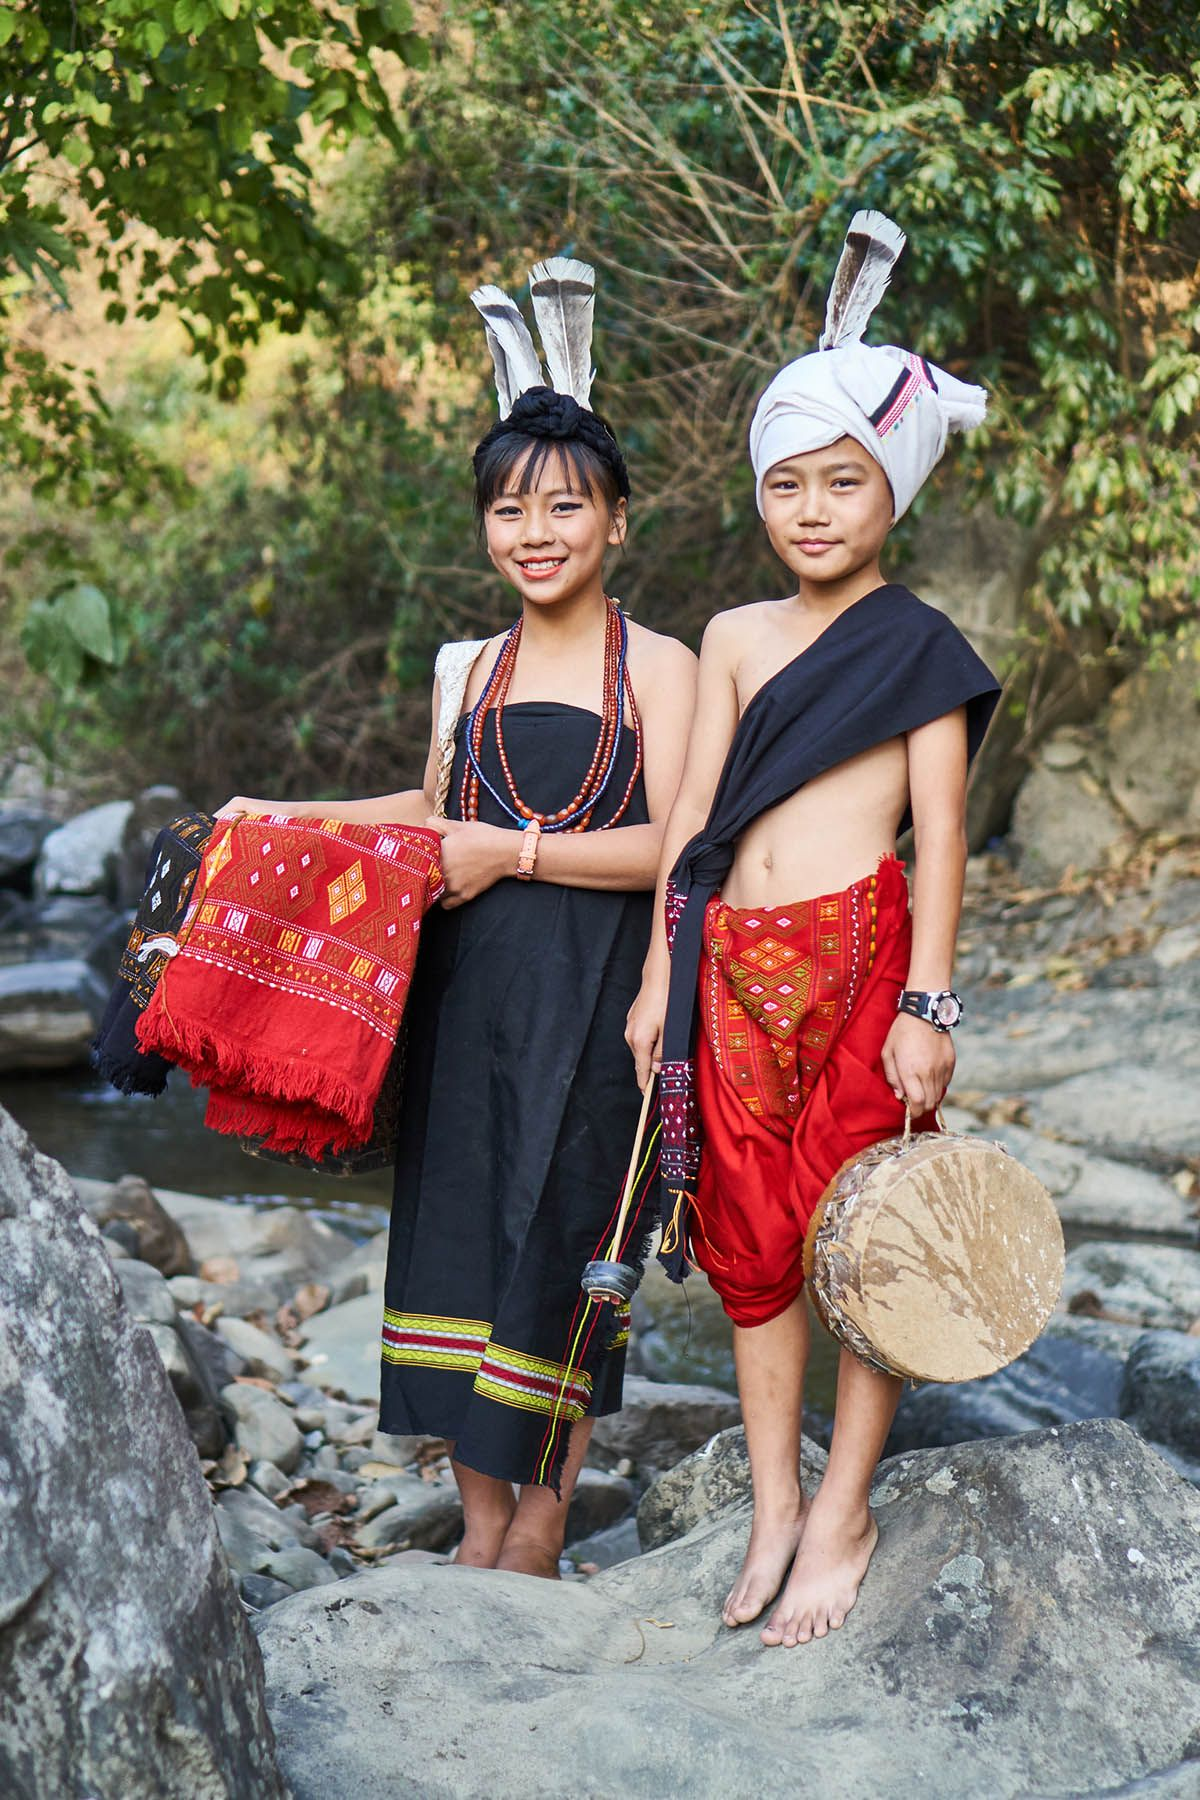 77 Best Manipur: Traditional Dresses images | Traditional ... |North East Indian Clothing